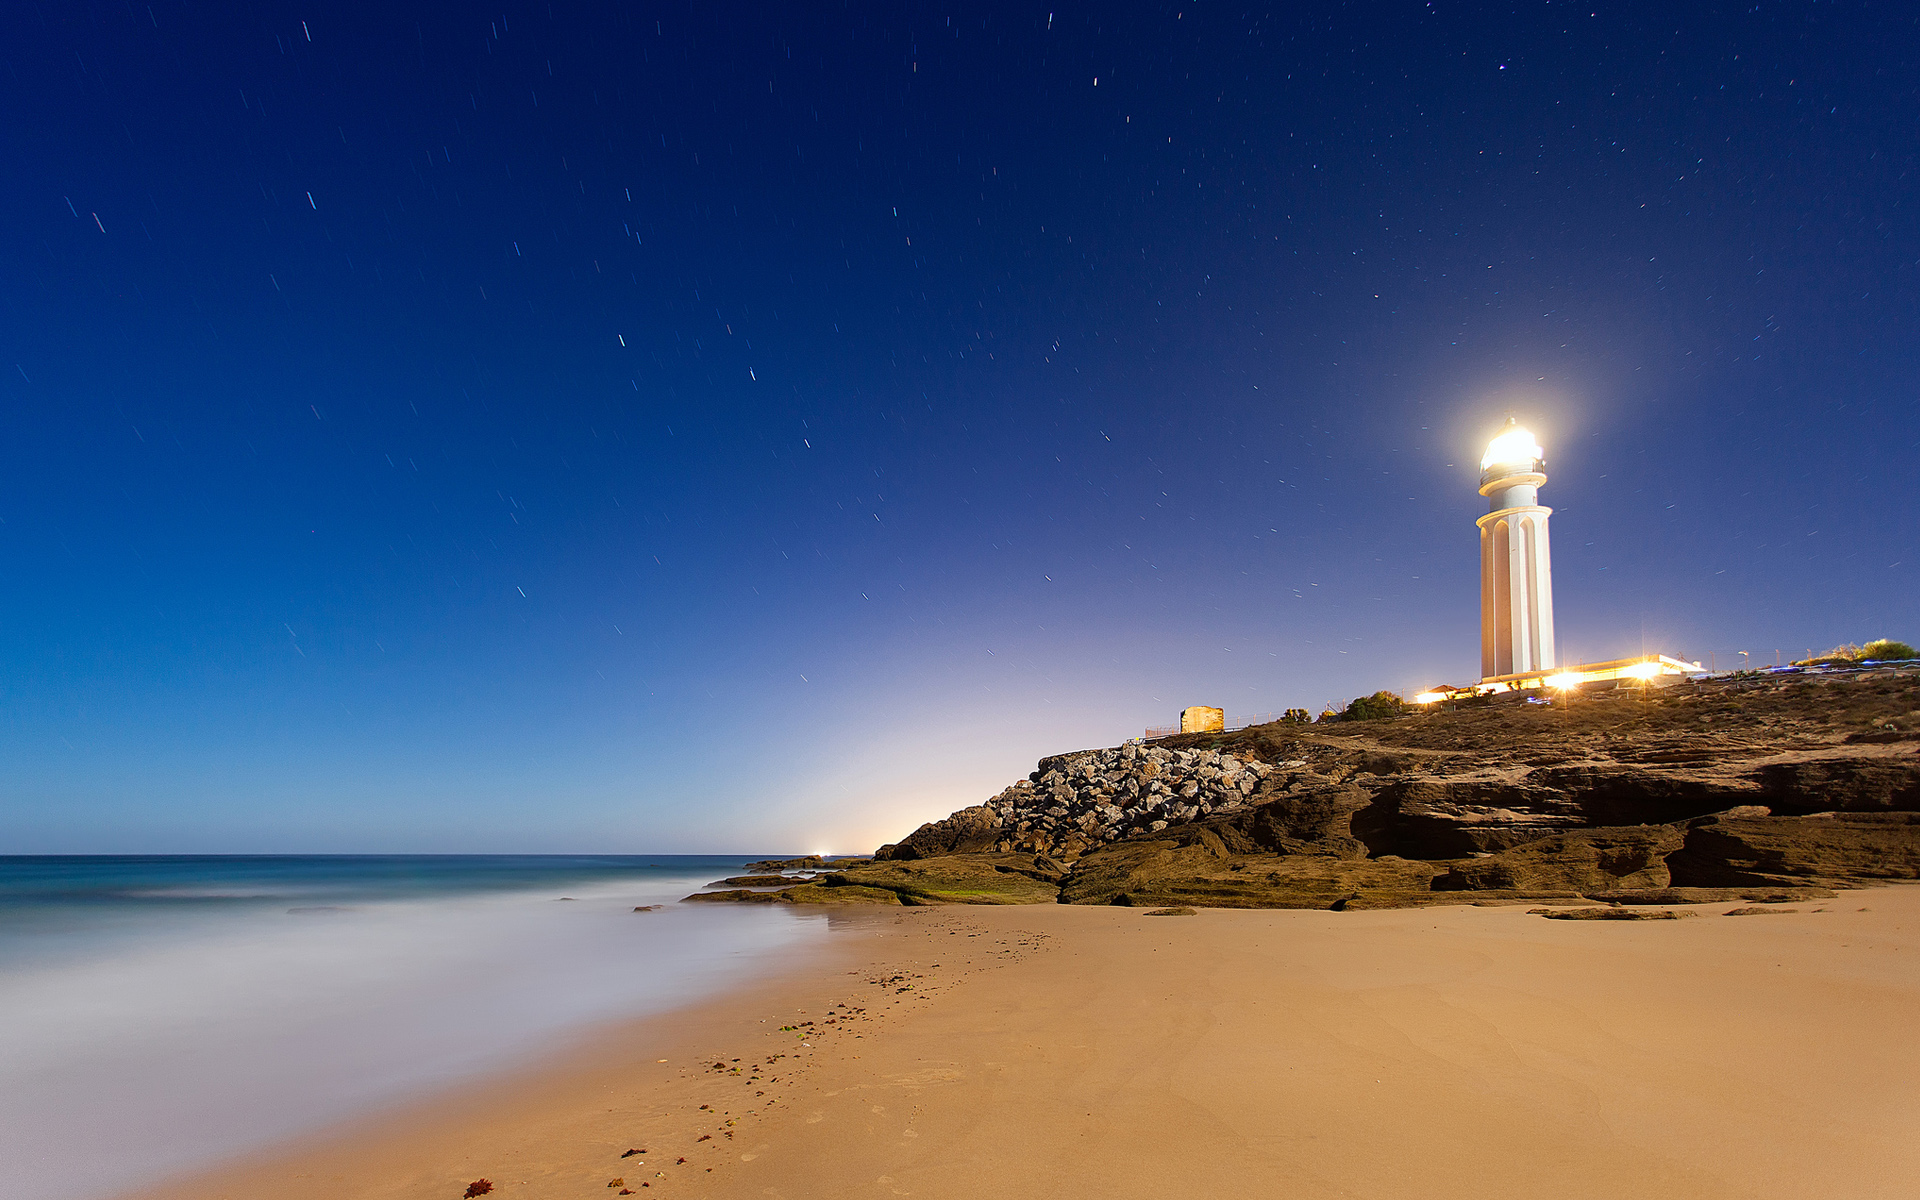 Cape Trafalgar Lighthouse Wallpapers HD Wallpapers 1920x1200